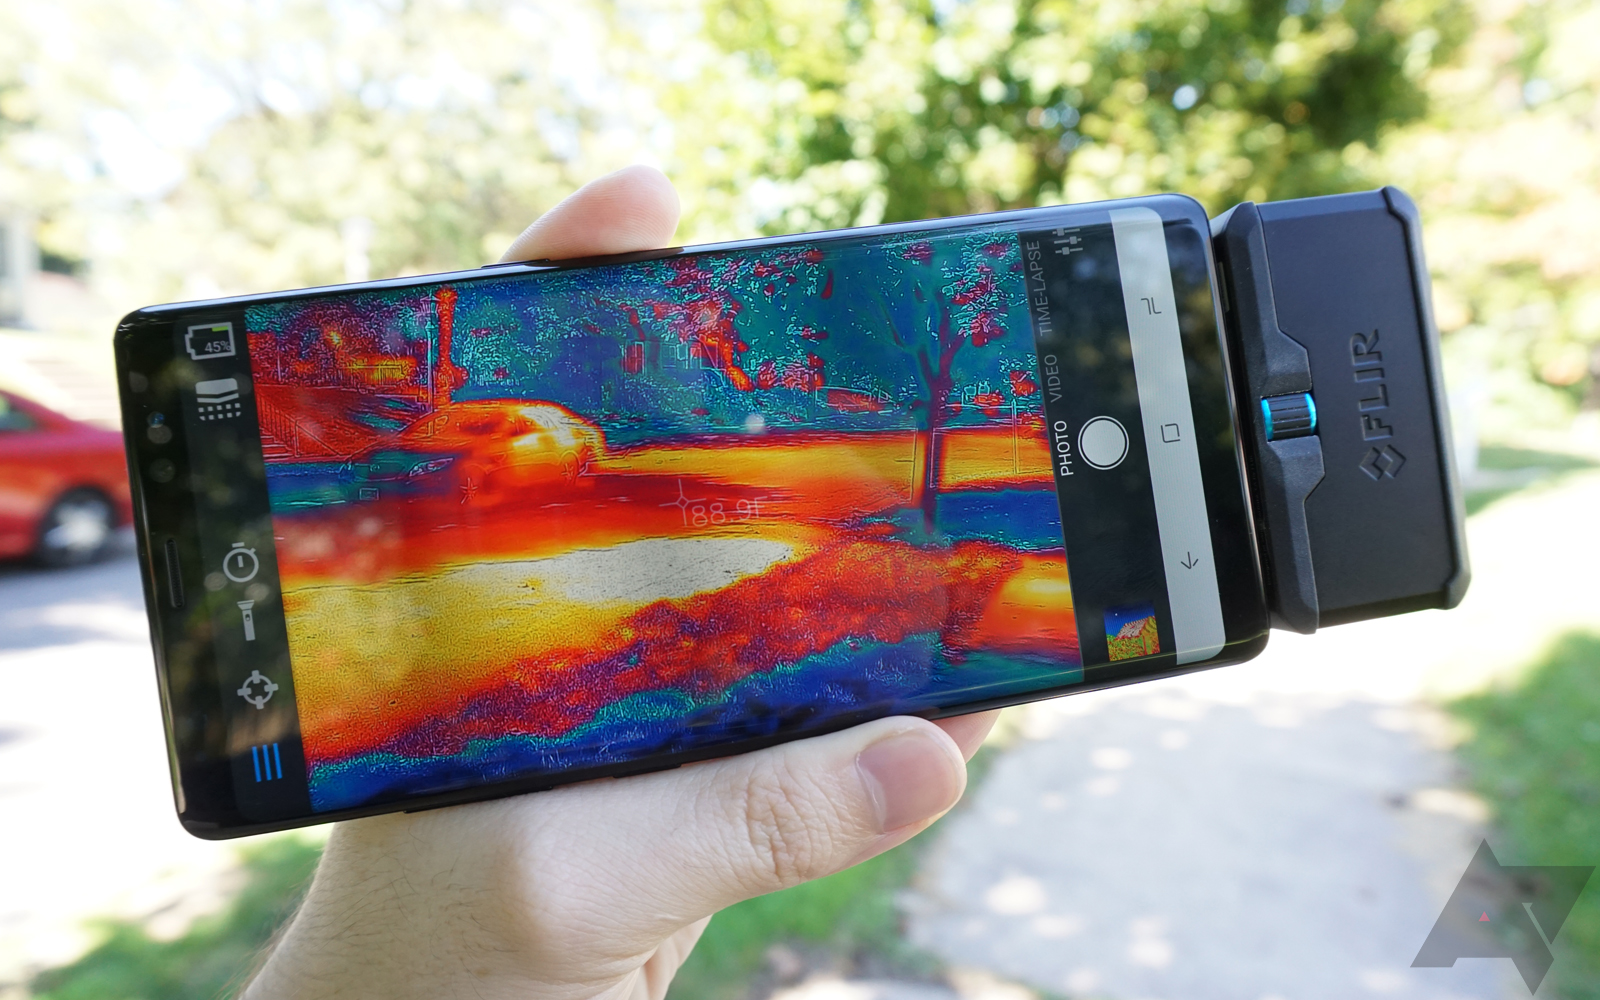 FLIR One Pro review: An excellent mobile thermal camera, for